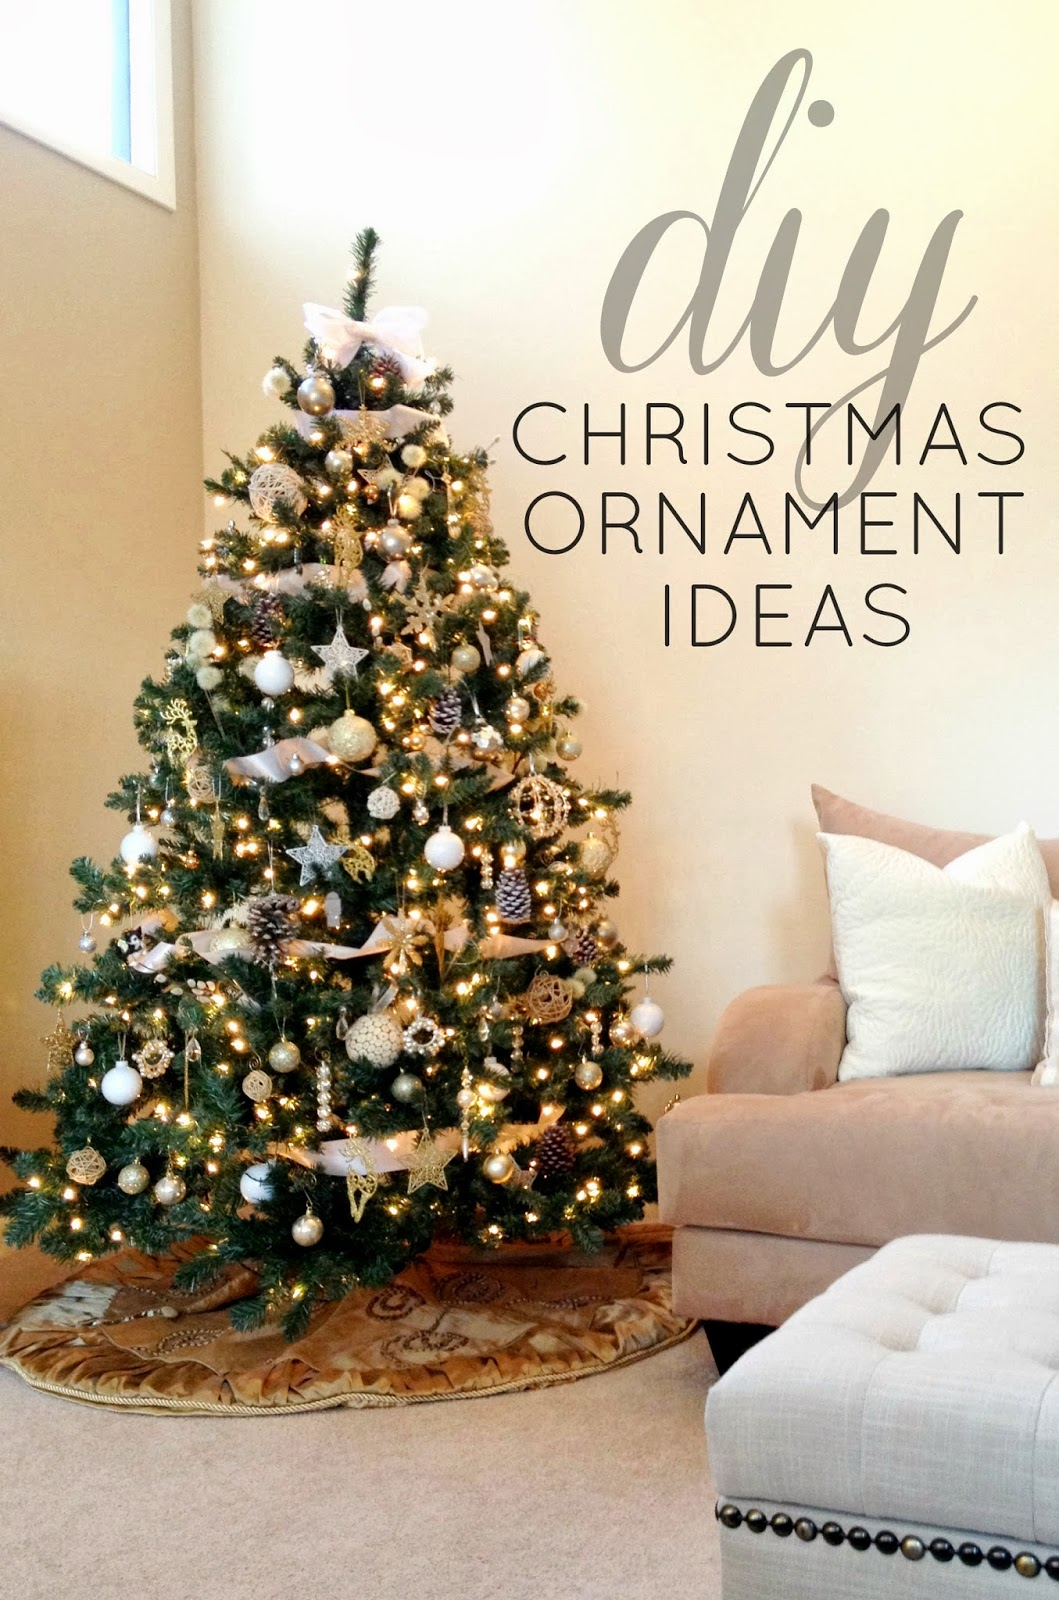 Christmas Tree Ideas Diy : Livelovediy diy christmas ornaments ideas